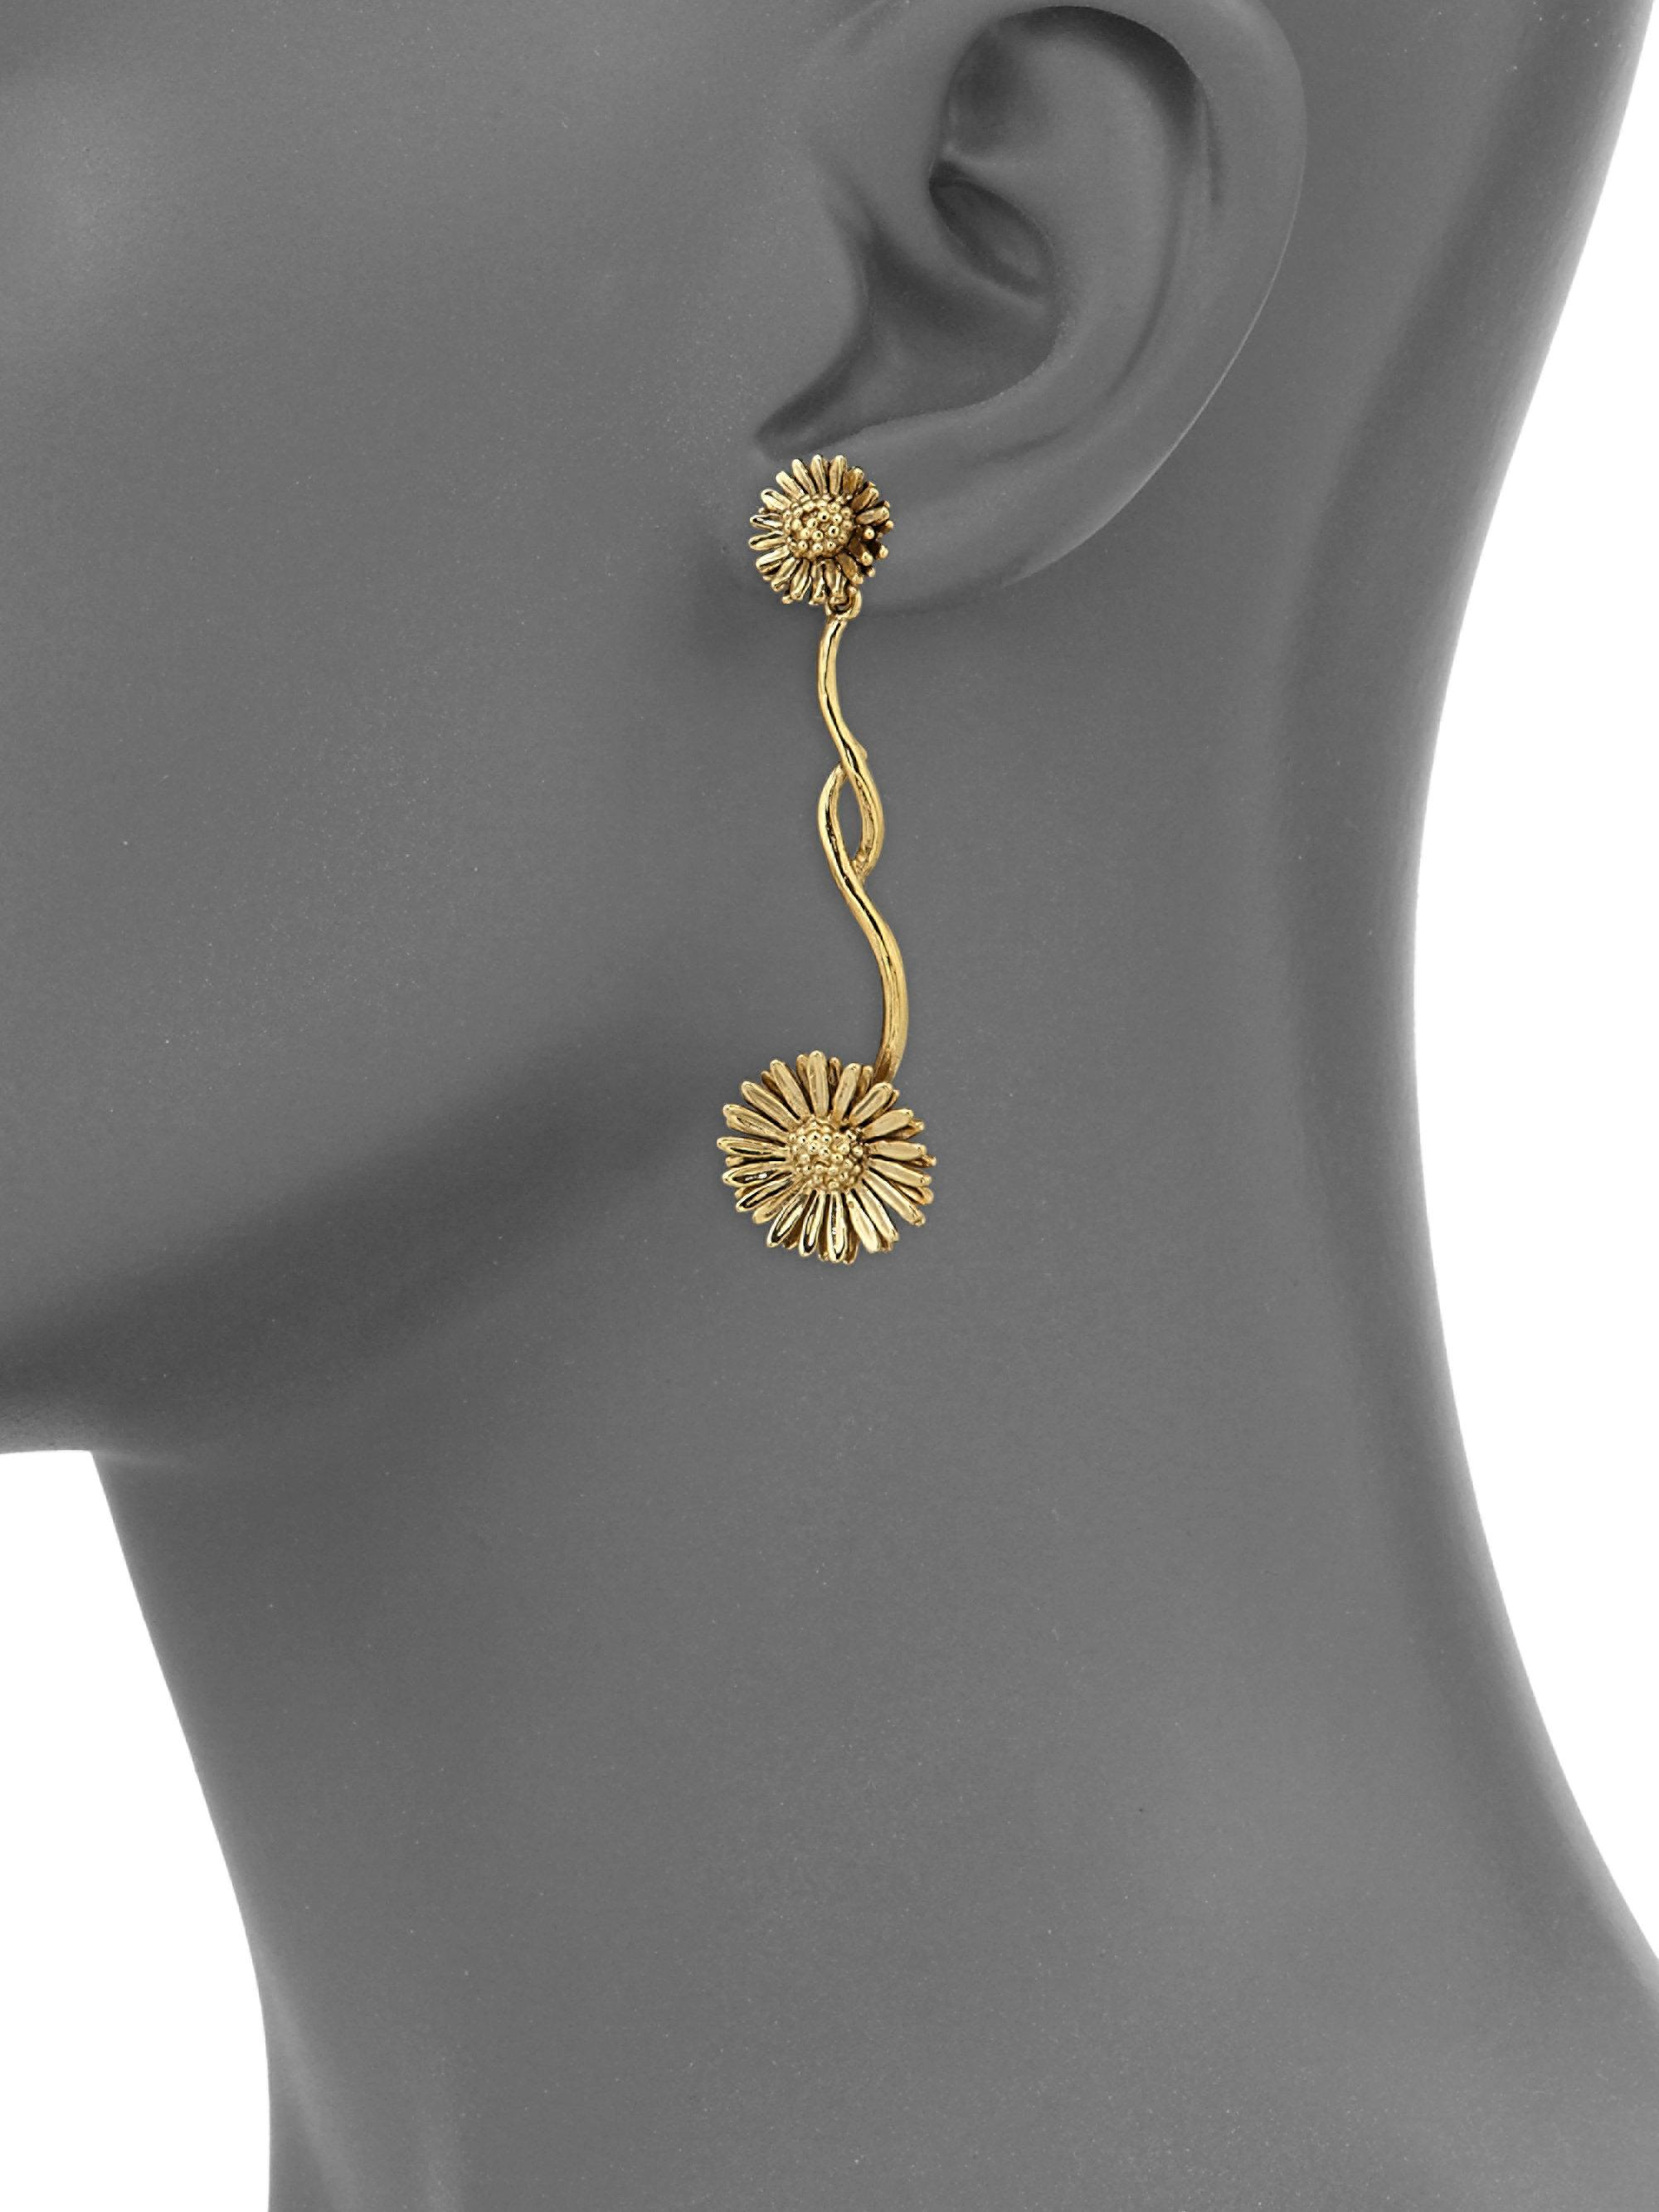 vermeil single eu rose london hires gold earring links earrings en grace of drop